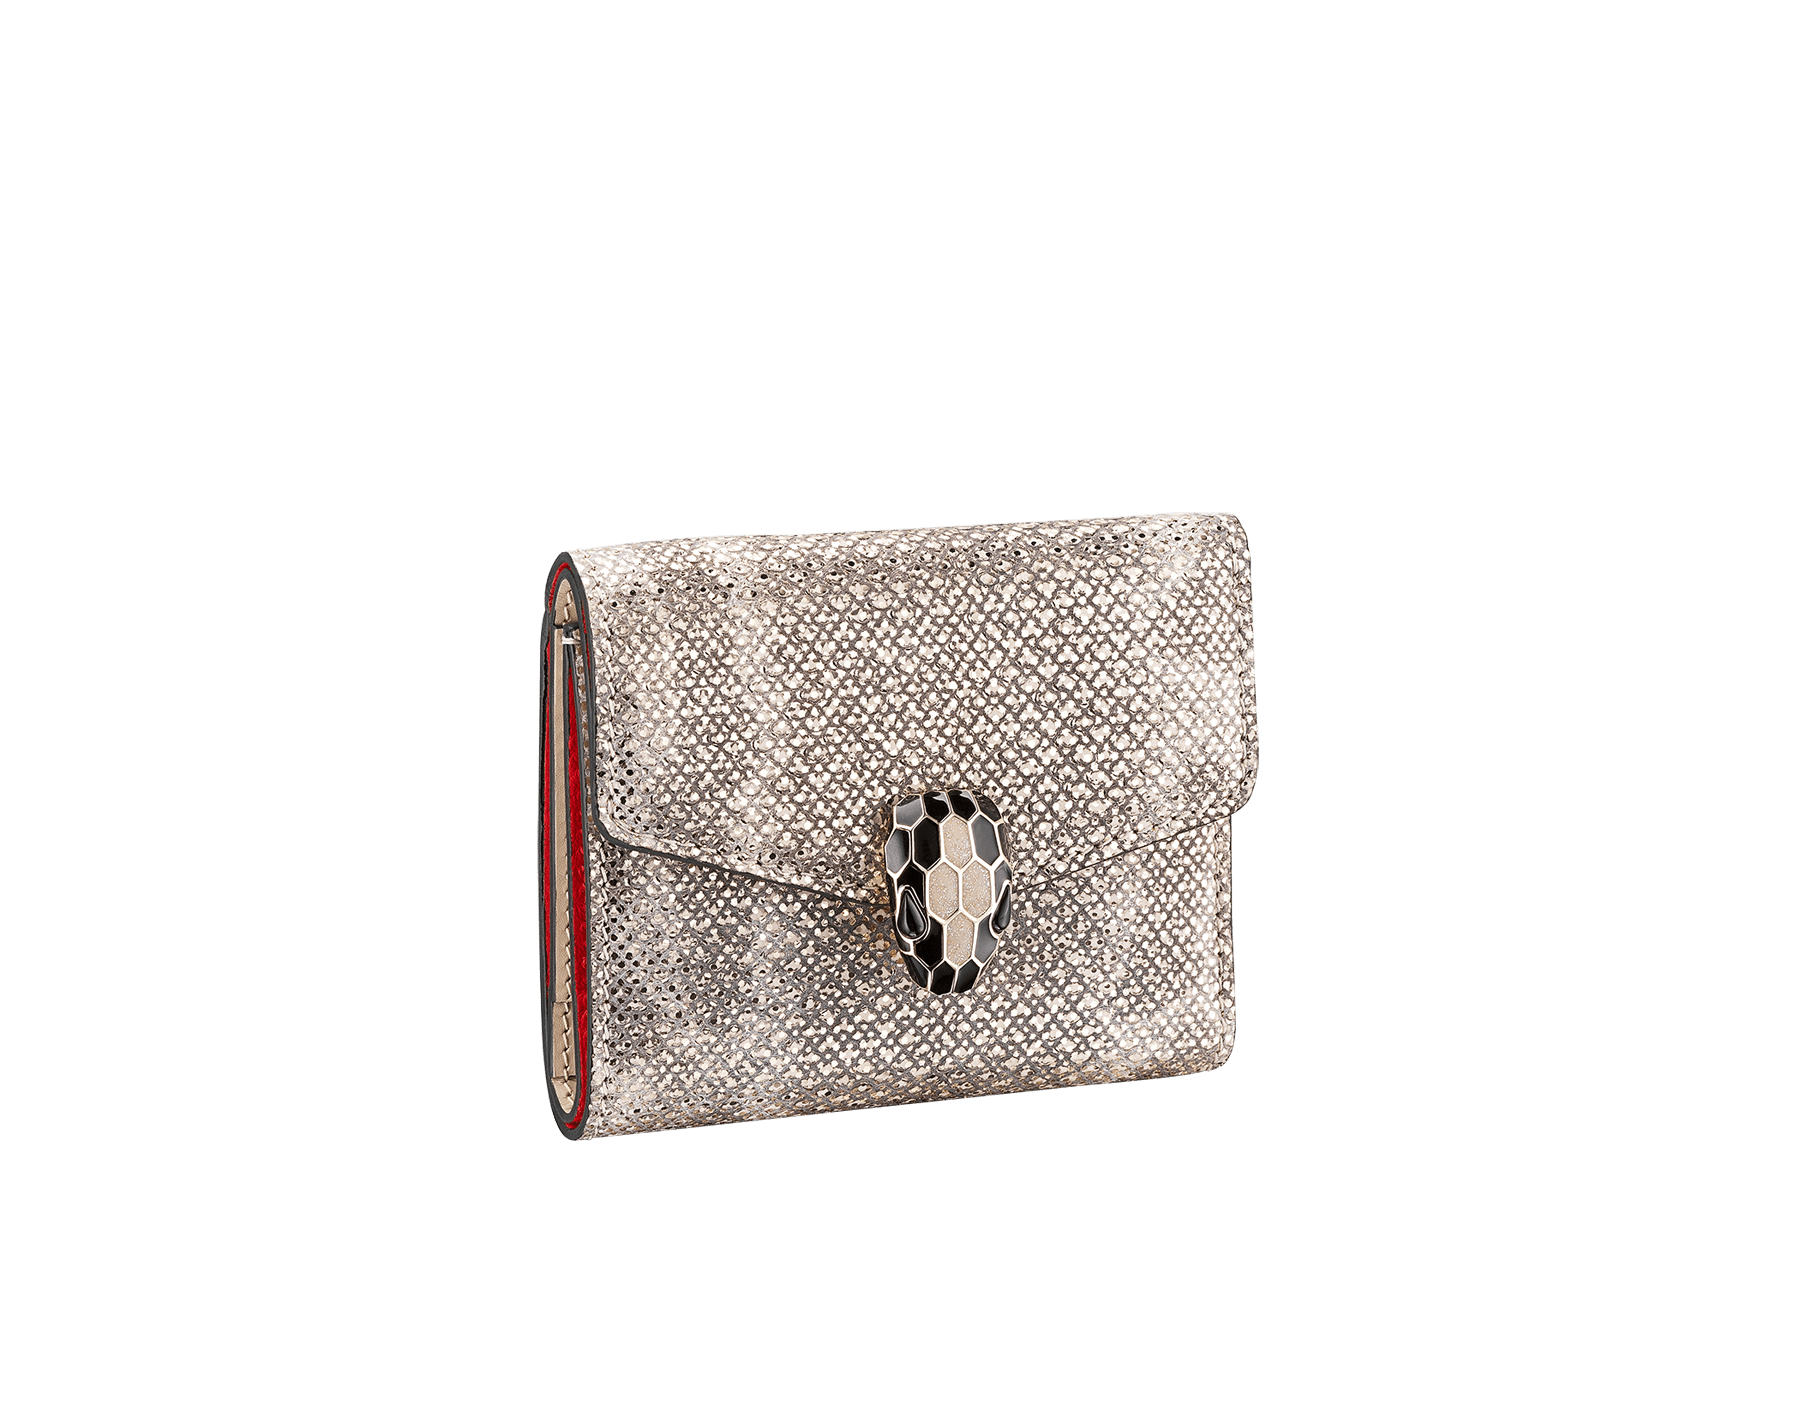 Serpenti Forever slim compact wallet in milky opal karung skin and milky opal calf leather. Iconic snakehead stud closure in black and glitter milky opal enamel, with black onyx eyes 289205 image 1